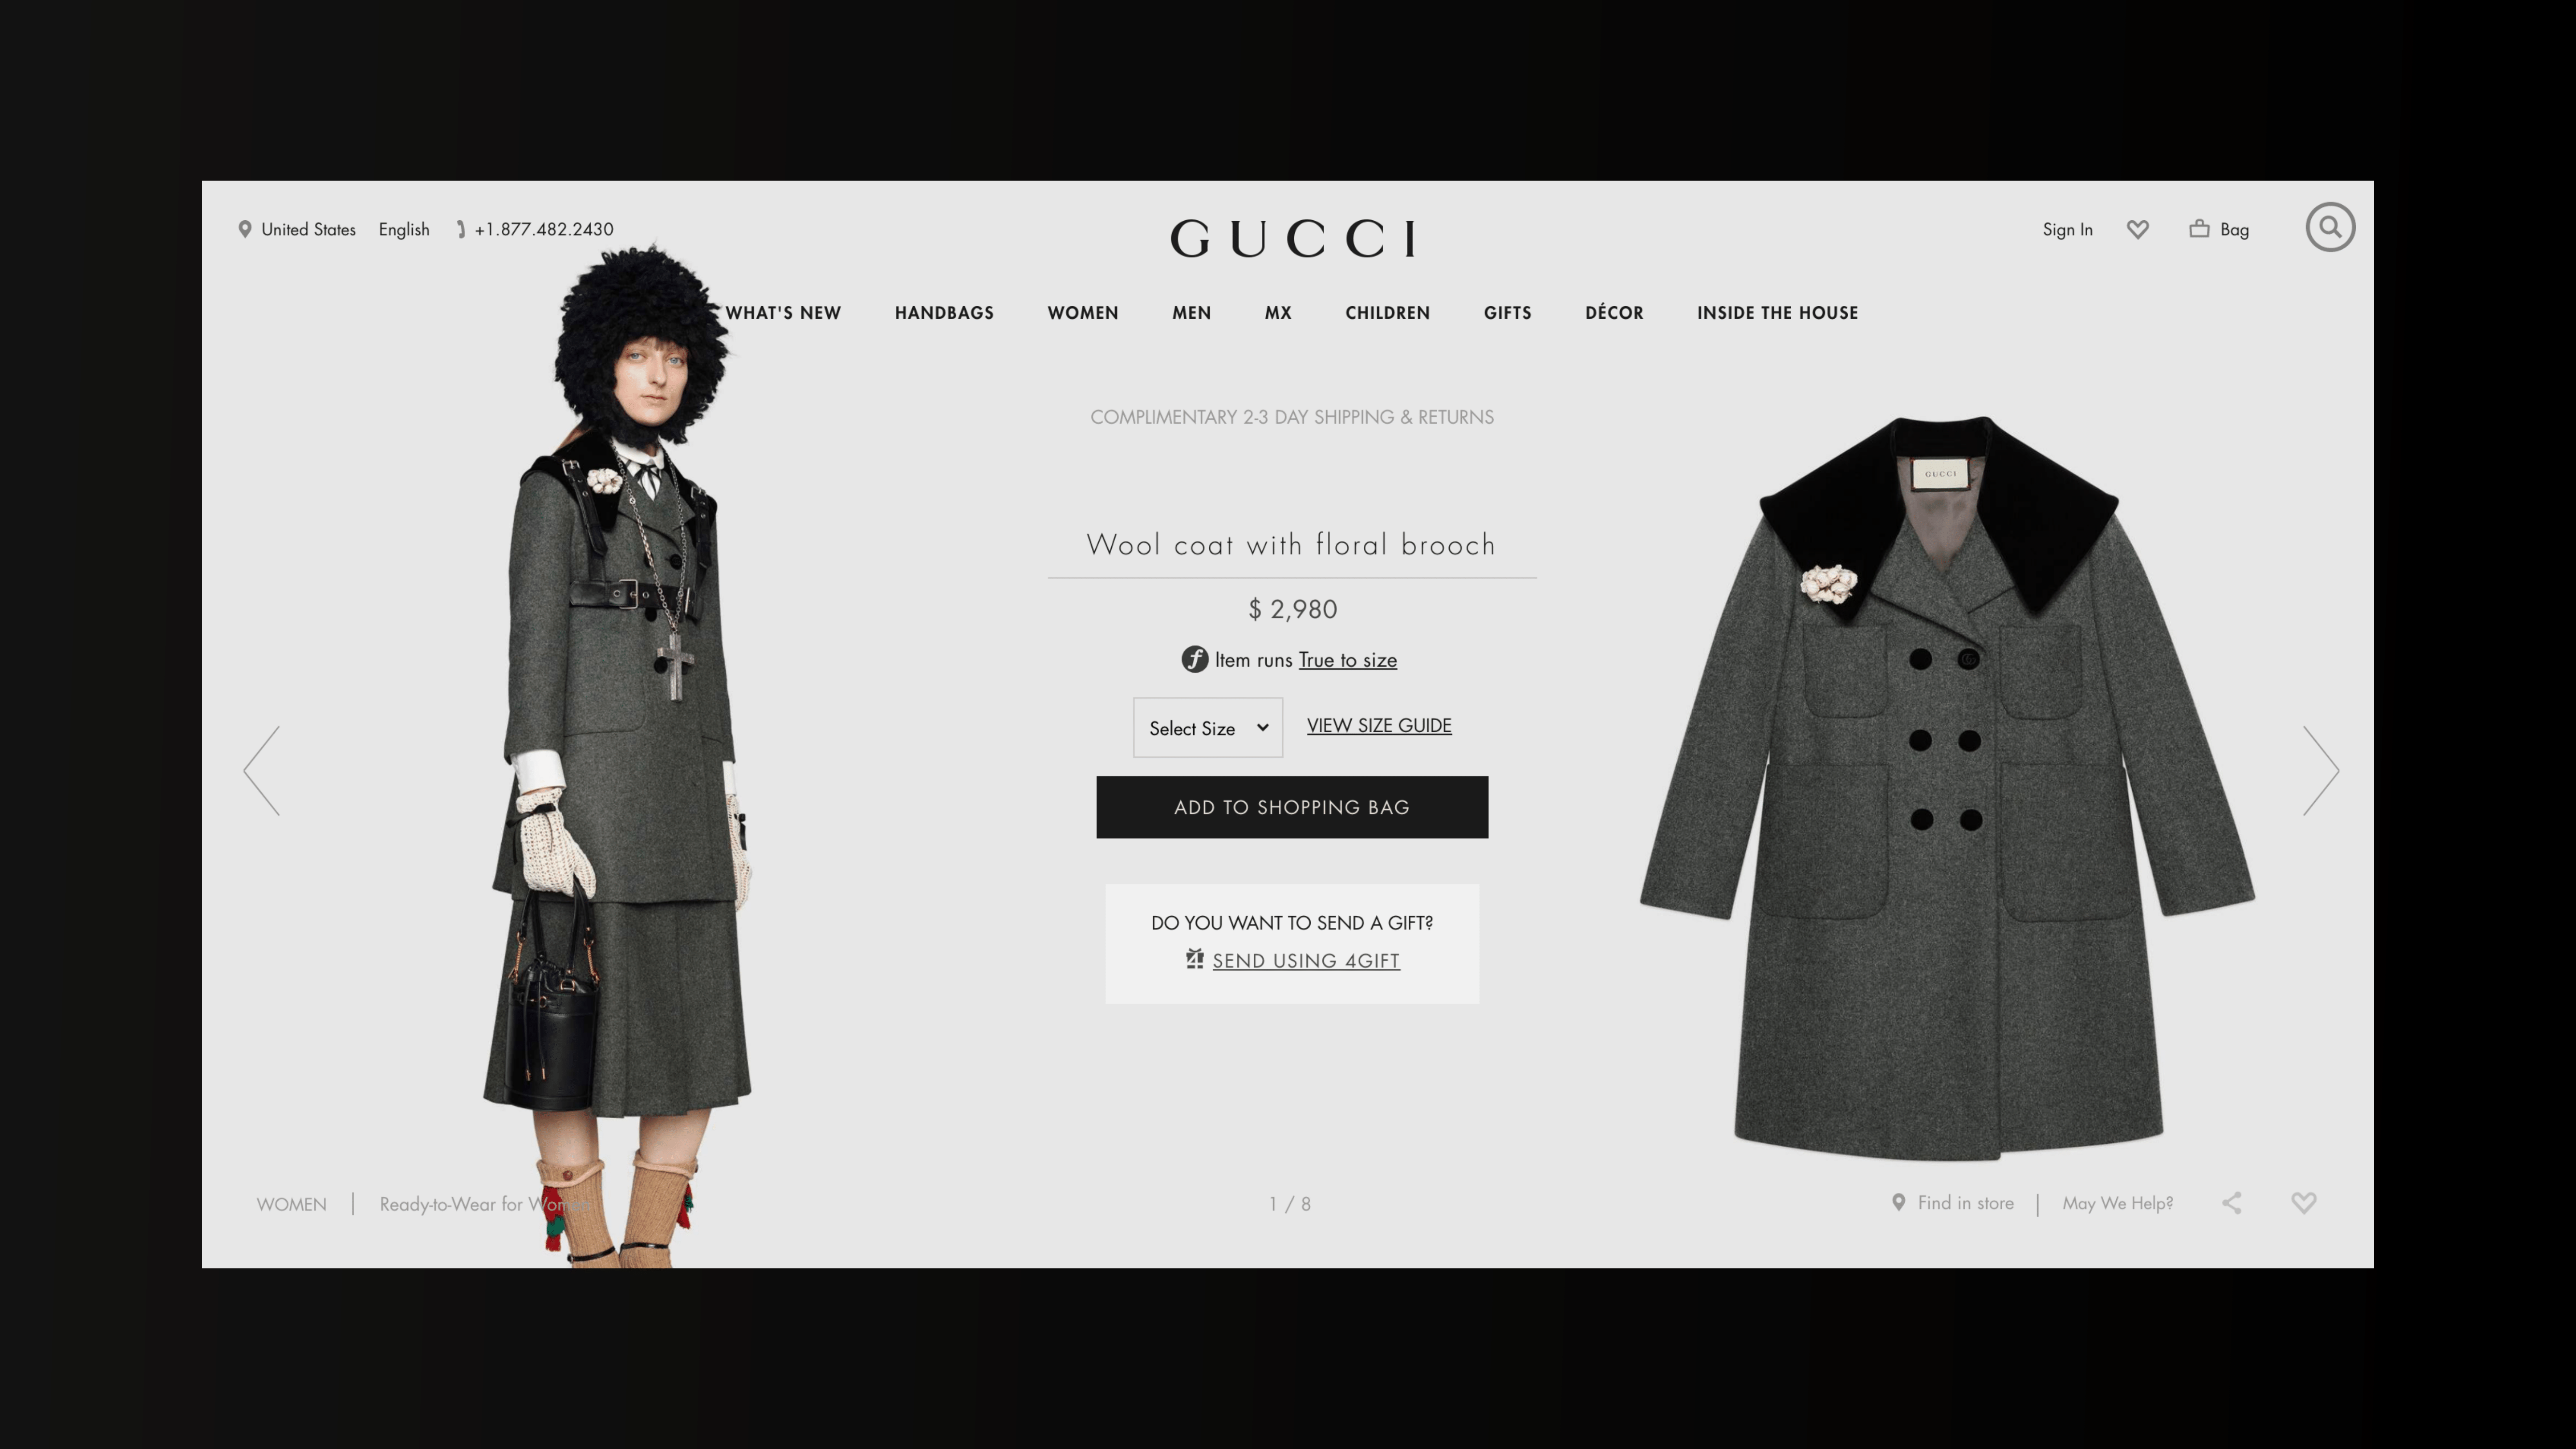 Digital agency on Gucci: Gucci's eCommerce Site: In-depth Product page